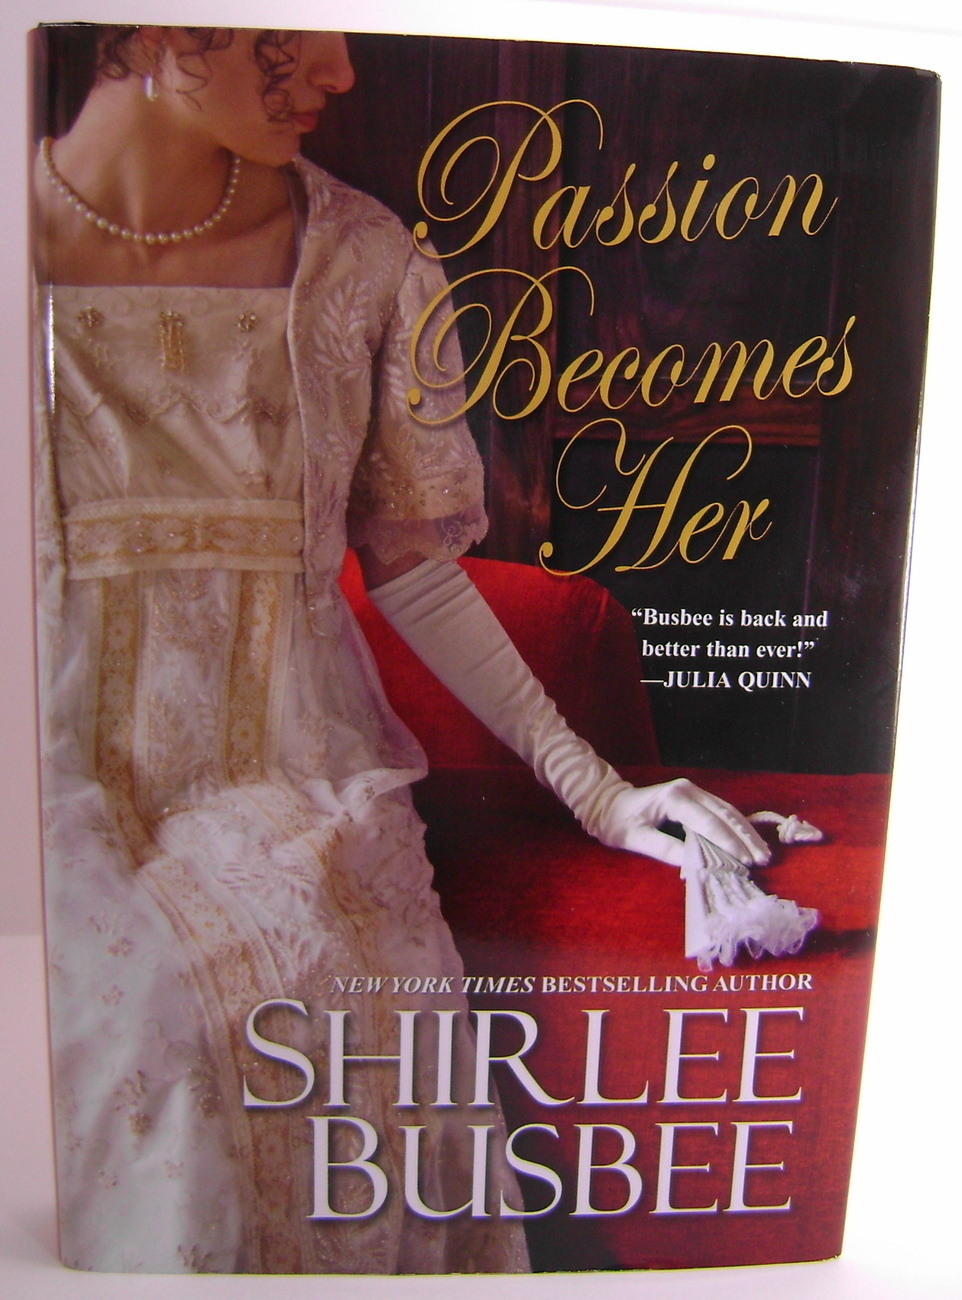 Shirleee Busbee Passion Becomes Her BCE HC